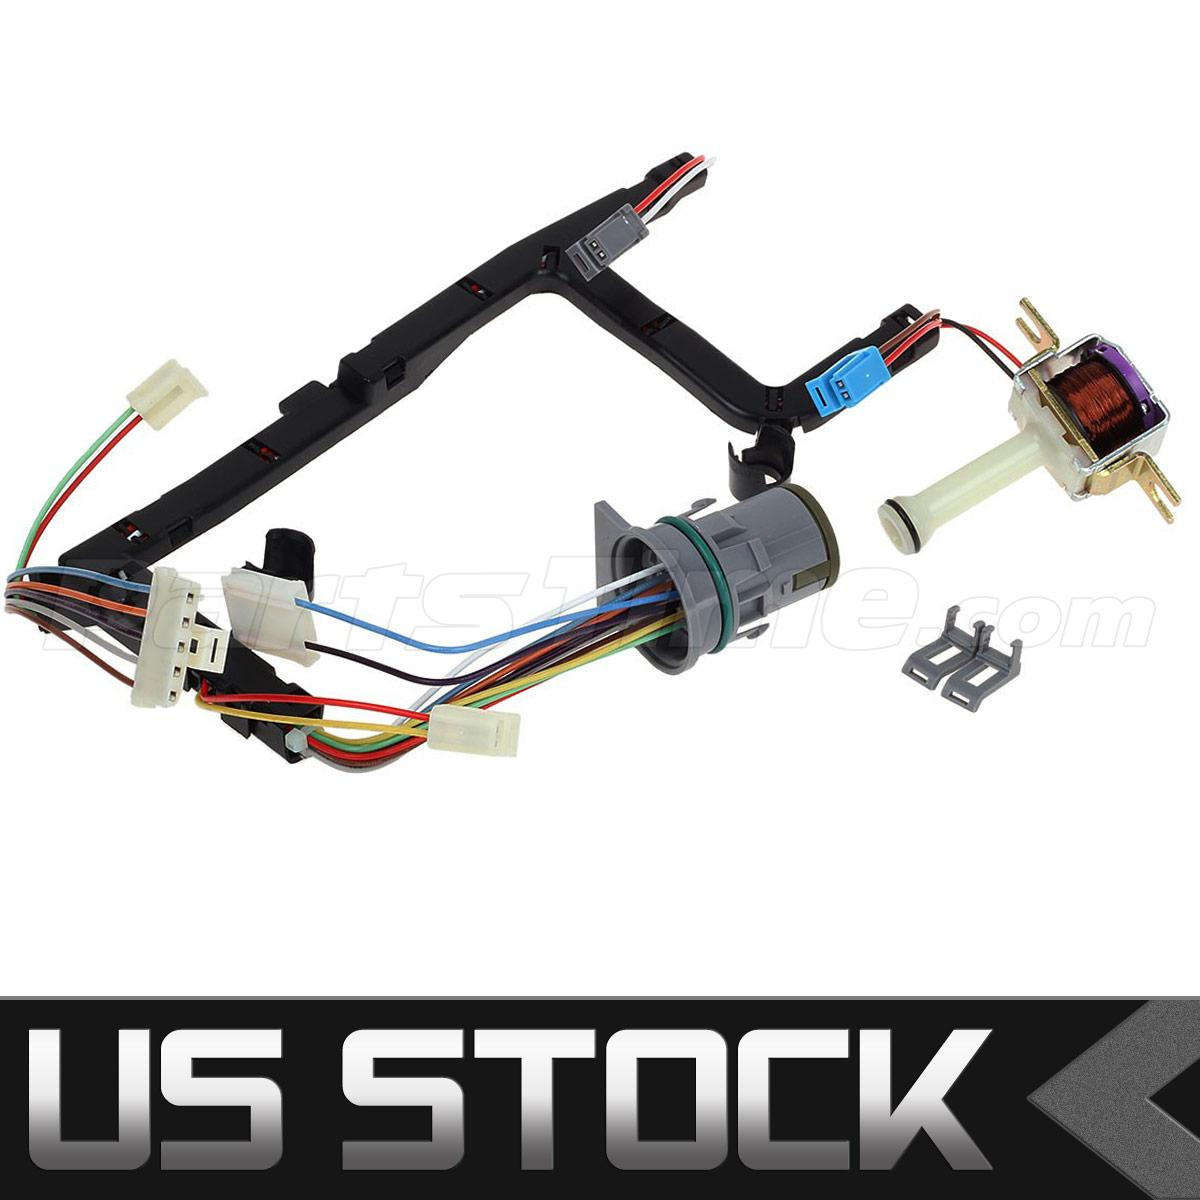 Ford F 150 Inertia Switch also 20 Pin Connector Wiring Harness Gm furthermore Transmission Wire Harnesses By Rostra Transmission in addition Ford 7 Pin Wiring Diagram further Universal 4l60e Wiring Harness. on rostra wiring diagram